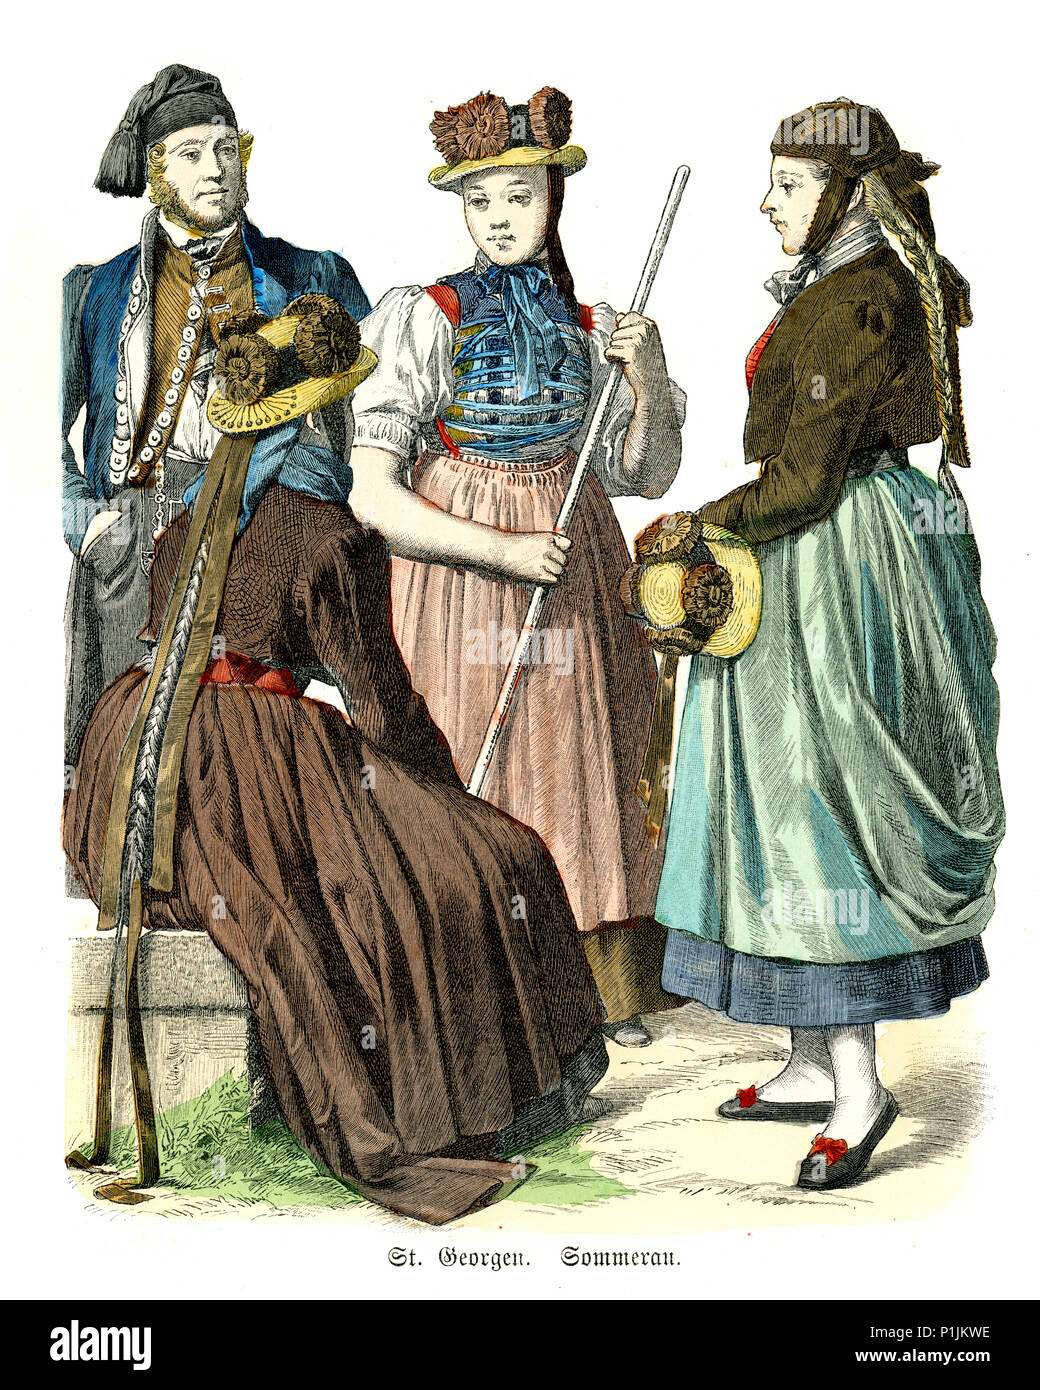 Vintage engraving of History of Fashion, Costumes of Germany, Baden, St. Georgen im Schwarzwald 19th Century. - Stock Image